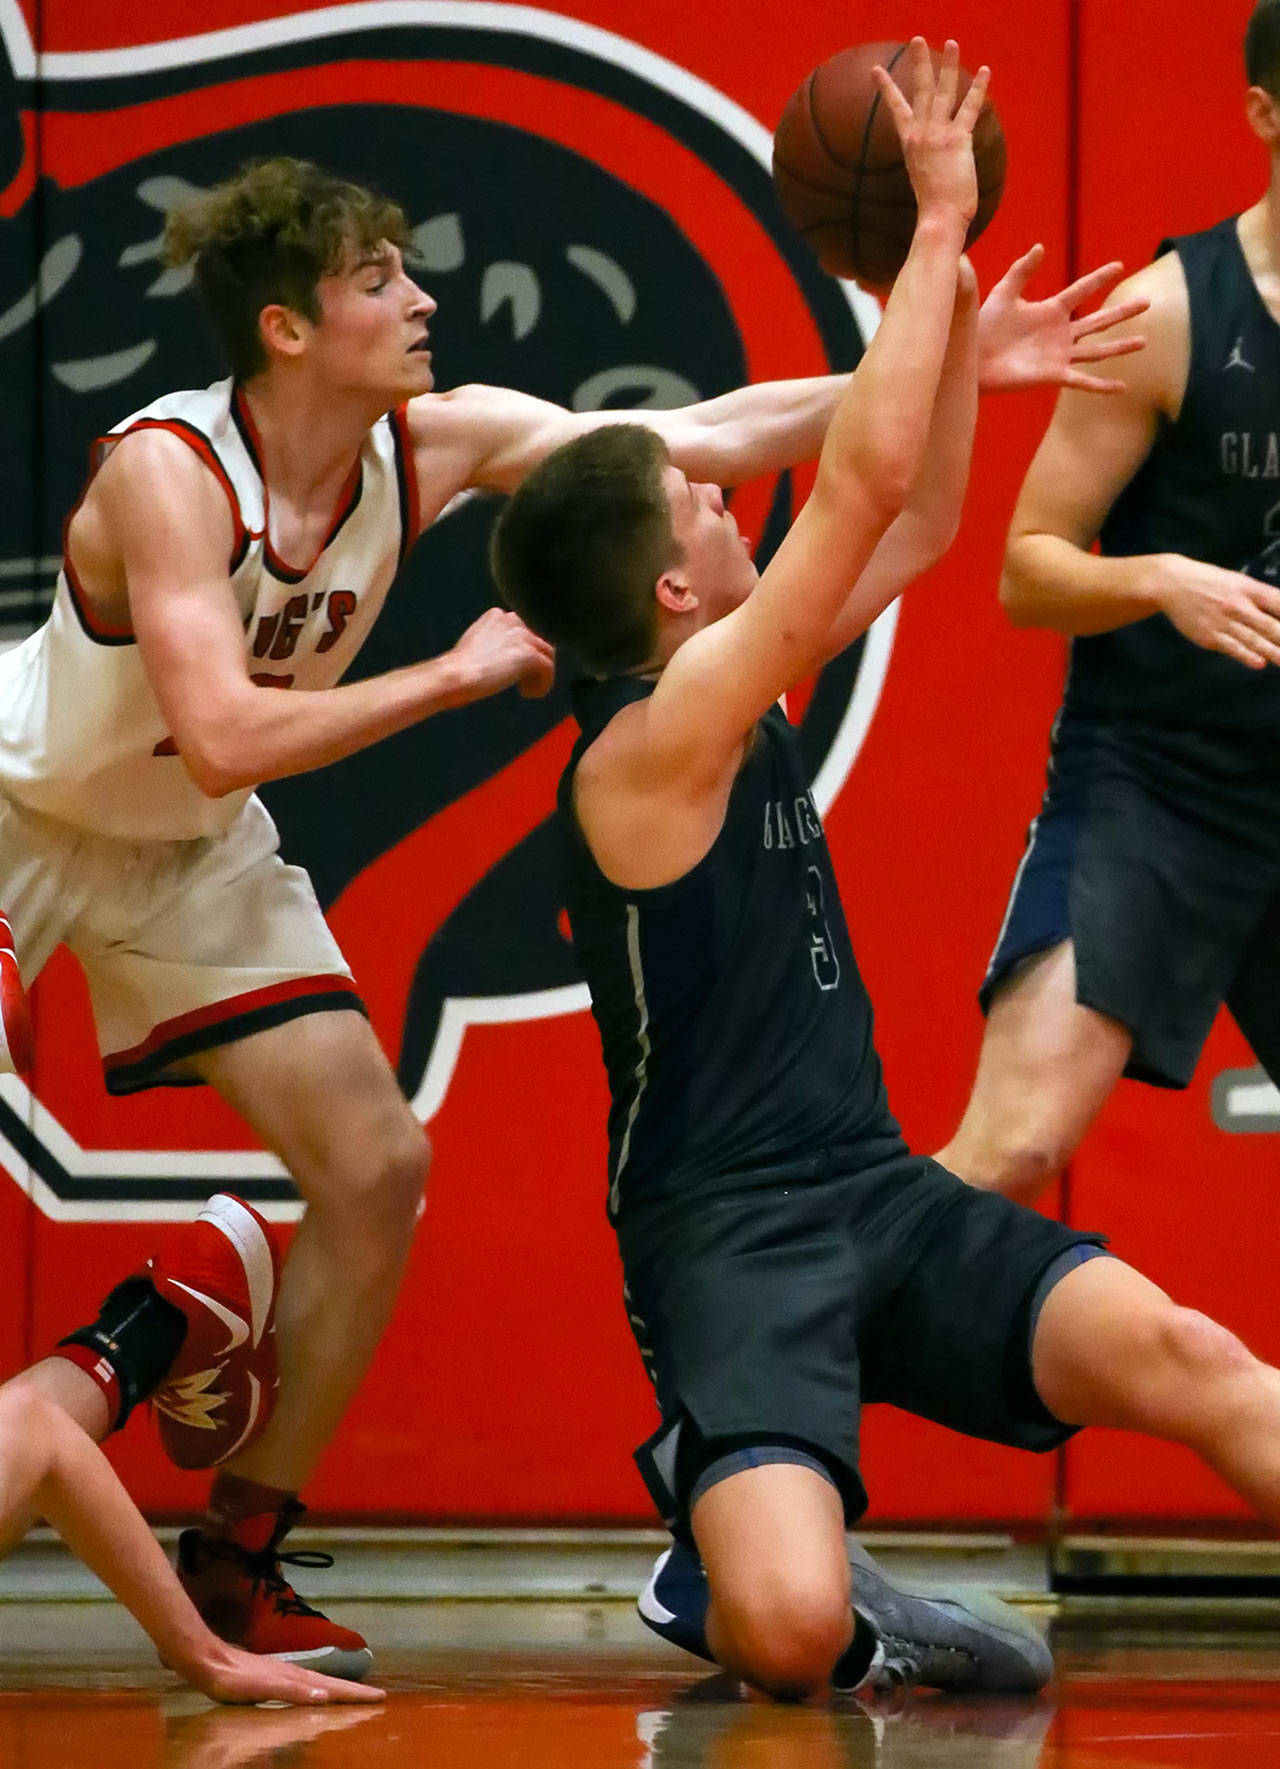 Glacier Peak's Bobby Siebers (right) makes a basket from the floor with King's Will Pohland defending Friday evening at King's School in Shoreline. The Grizzles won 58-53. (Kevin Clark / The Herald)